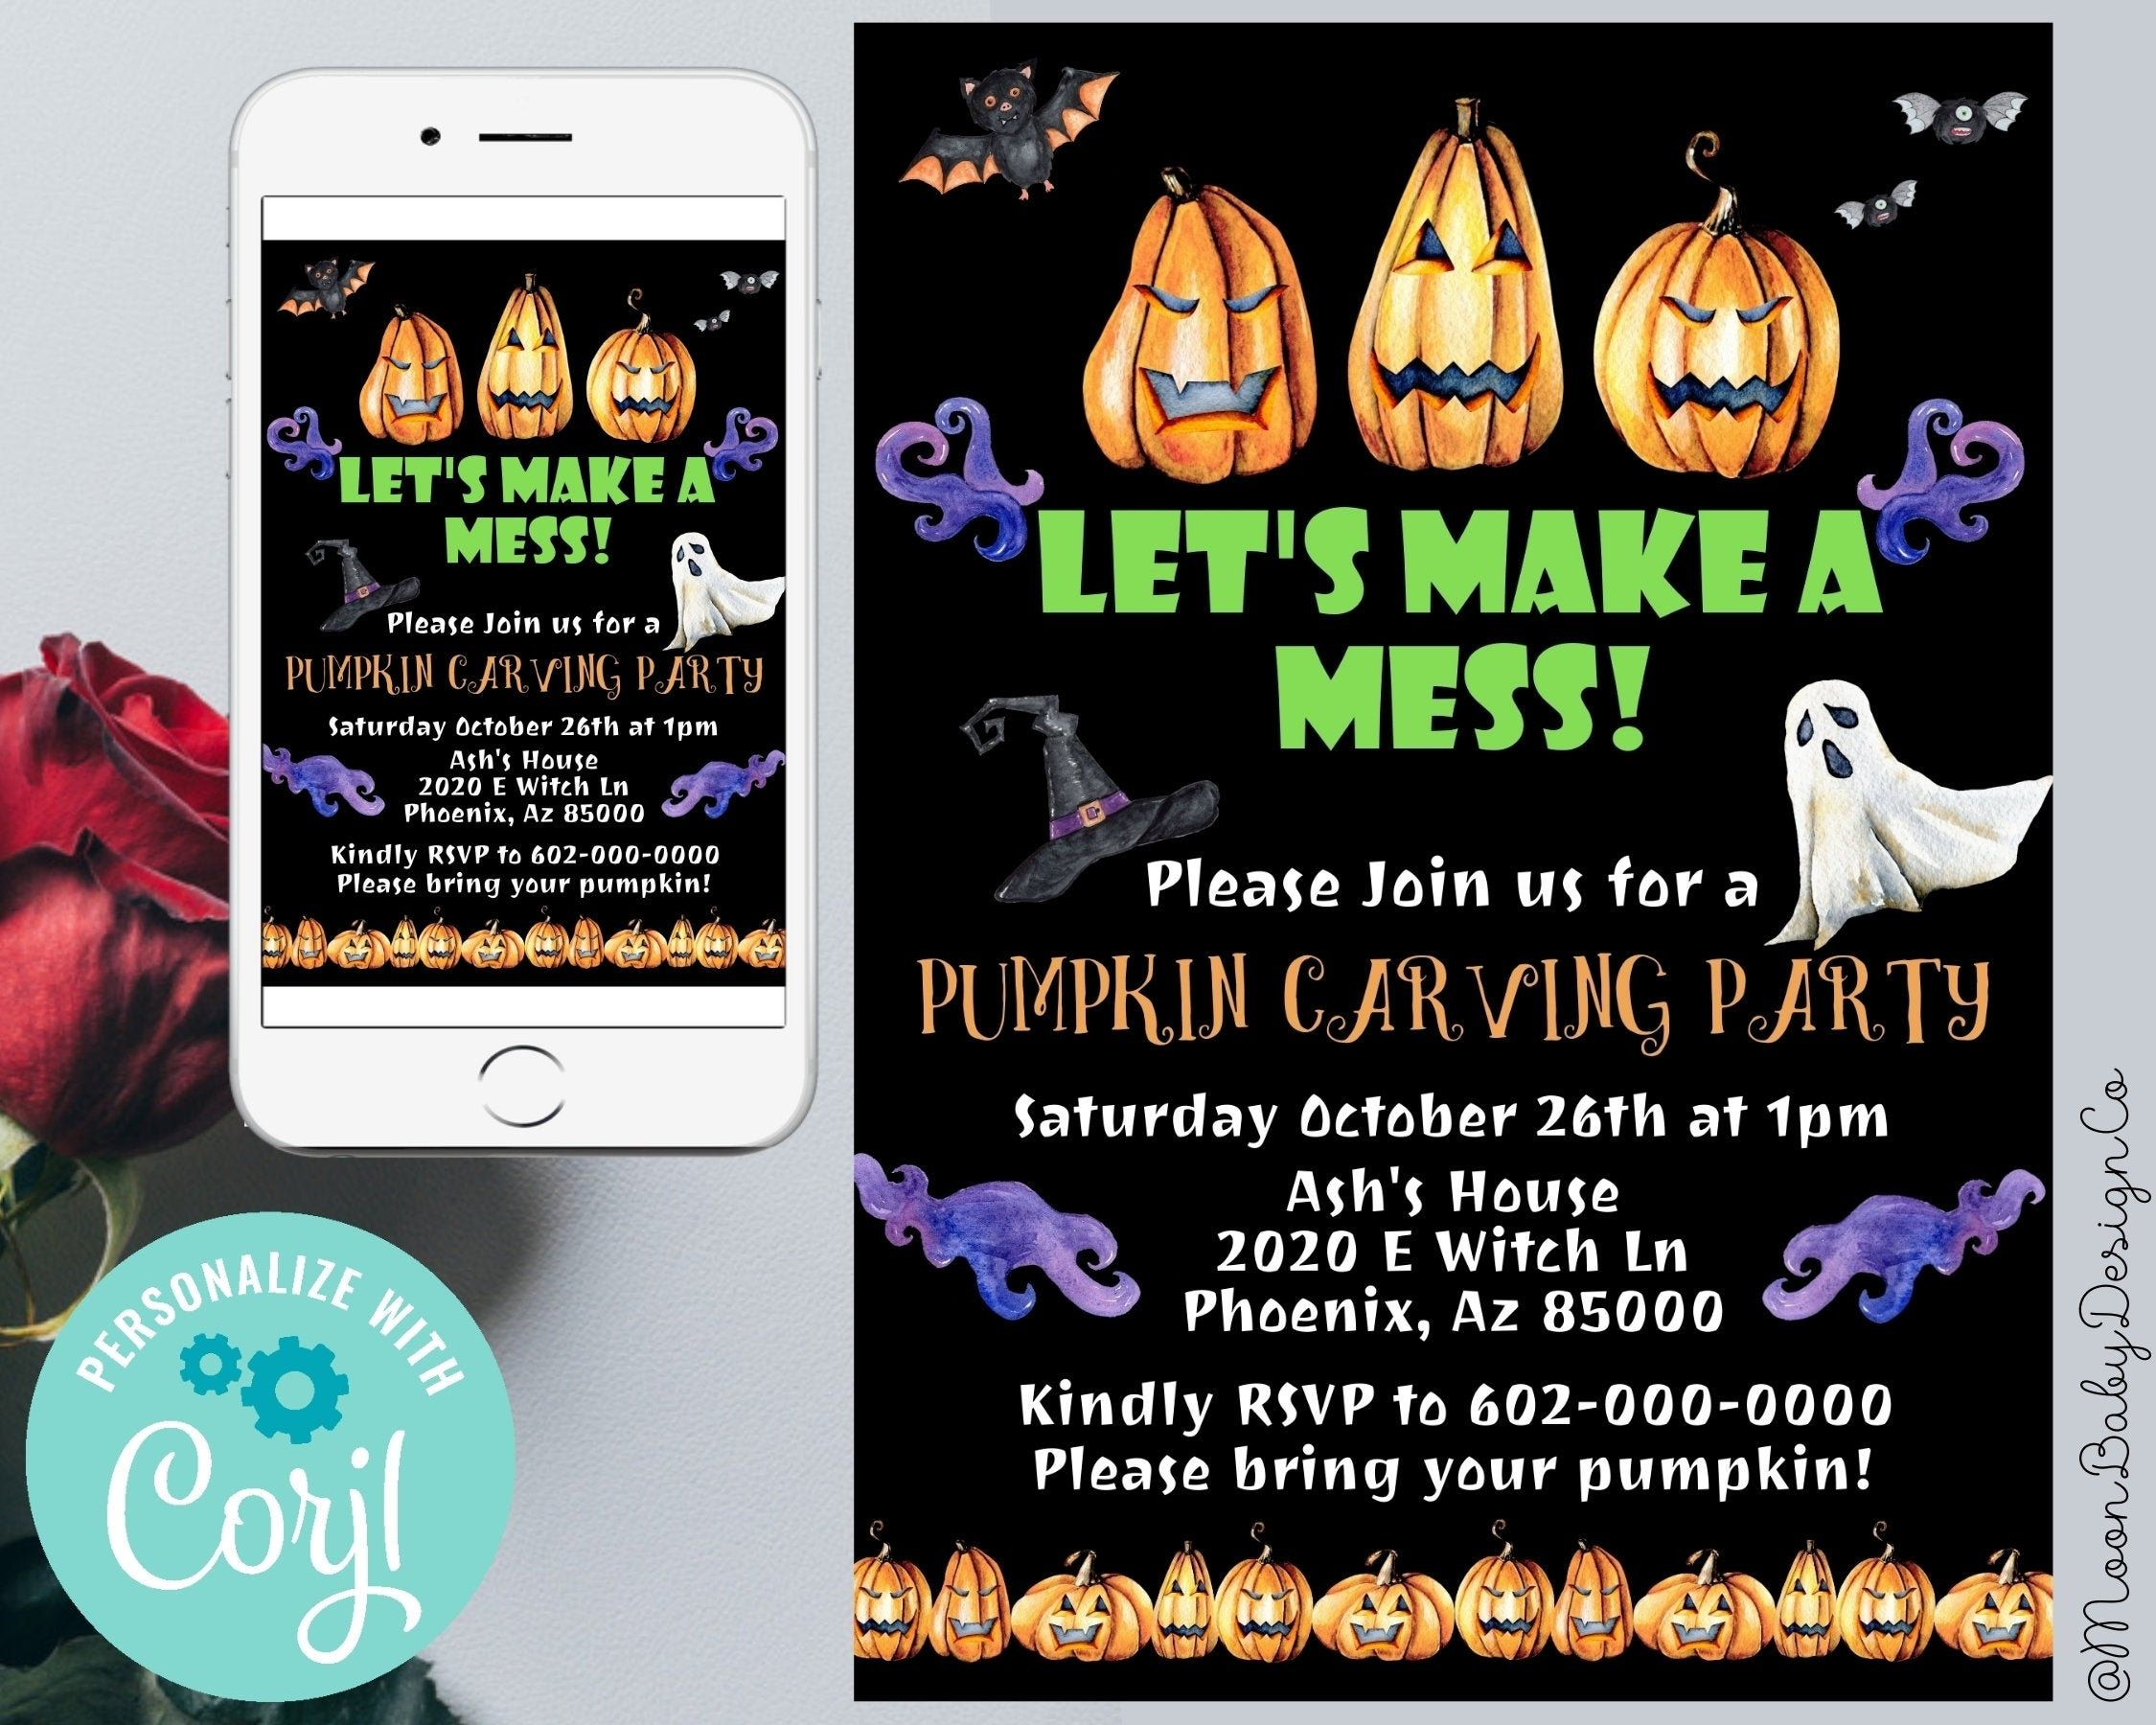 Pumpkin Carving Party Invitation, Halloween Pumpkin Carving Invitation, Pumpkin Carving, Lets Make A Mess, Halloween ideas, Digital Download #pumkincarvingdesigns